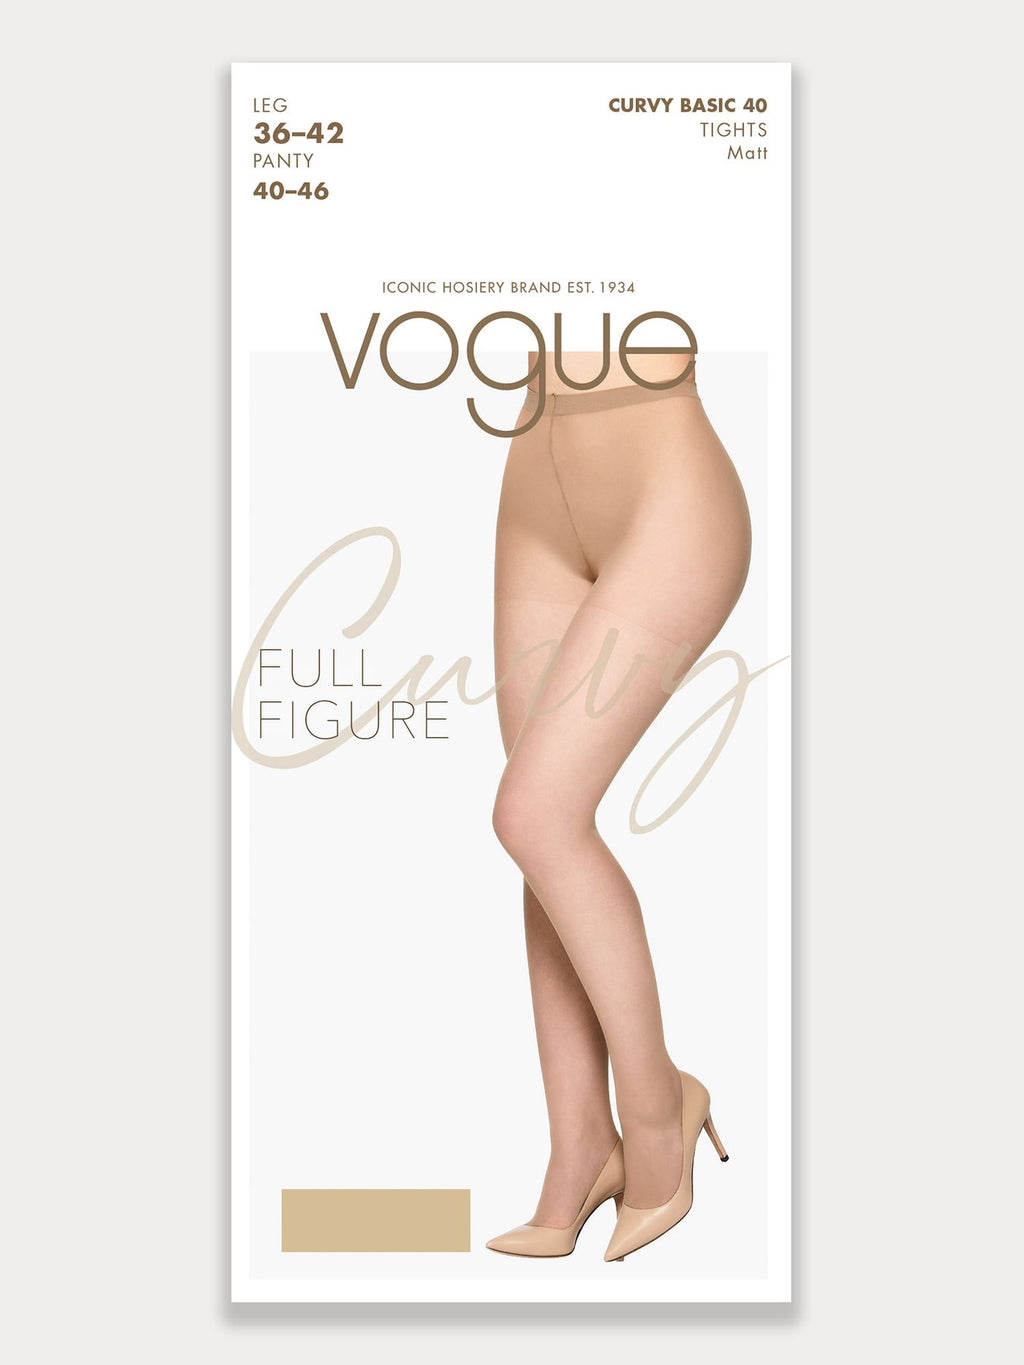 Sheer 40 denier tights in a matte look and with shorter leg designed specifically for plus size women.